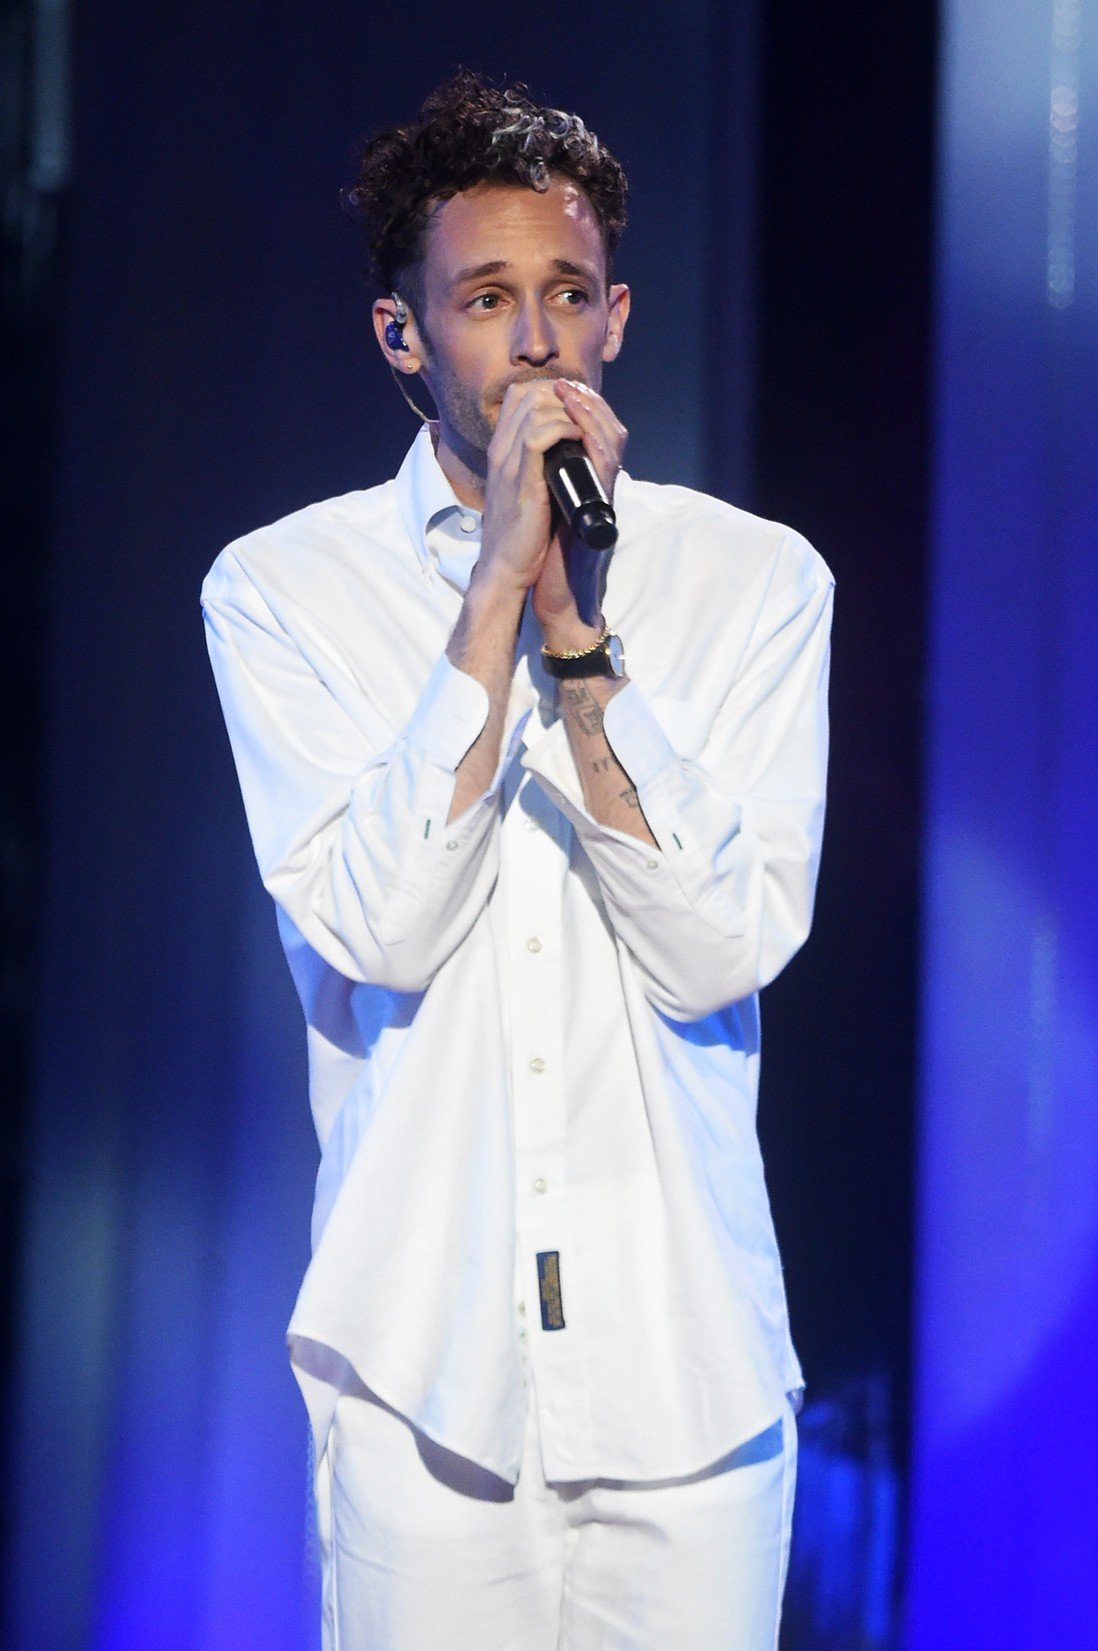 Wrabel performs onstage at the Logo's 2017 Trailblazer Honors event at Cathedral of St. John the Divine on June 22, 2017 in New York City.